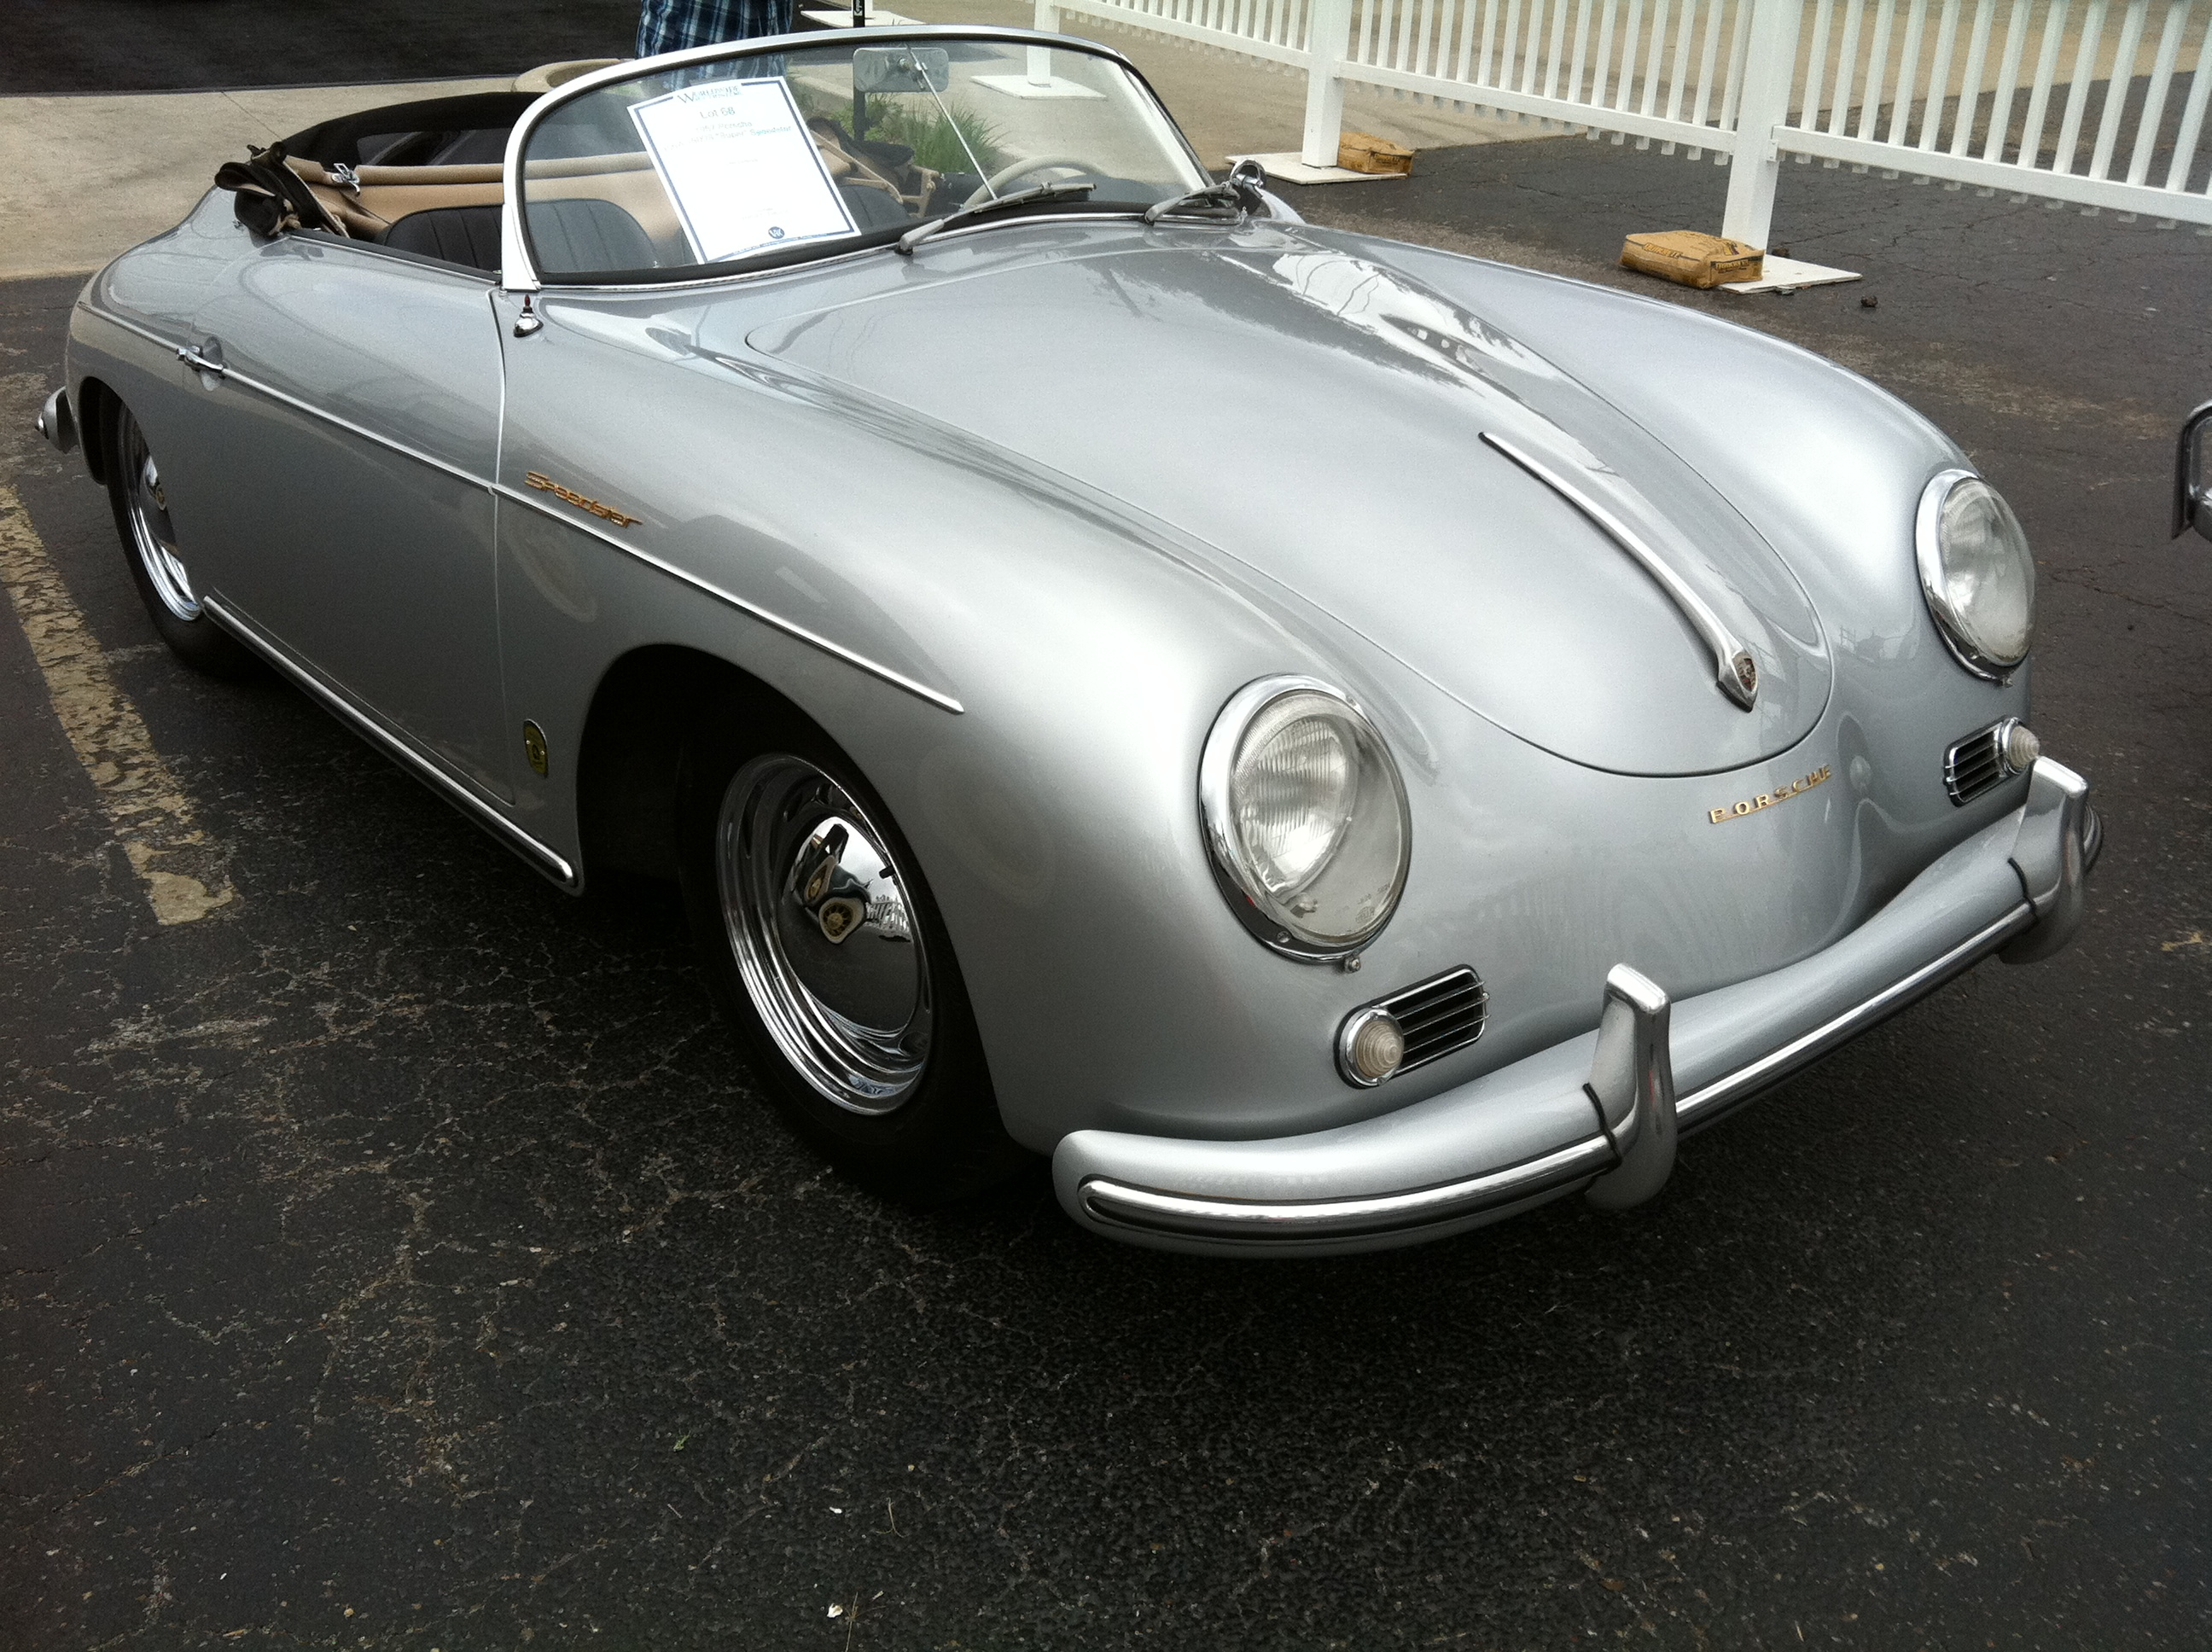 57 Porsche 1600s – Matt on Not-WordPress